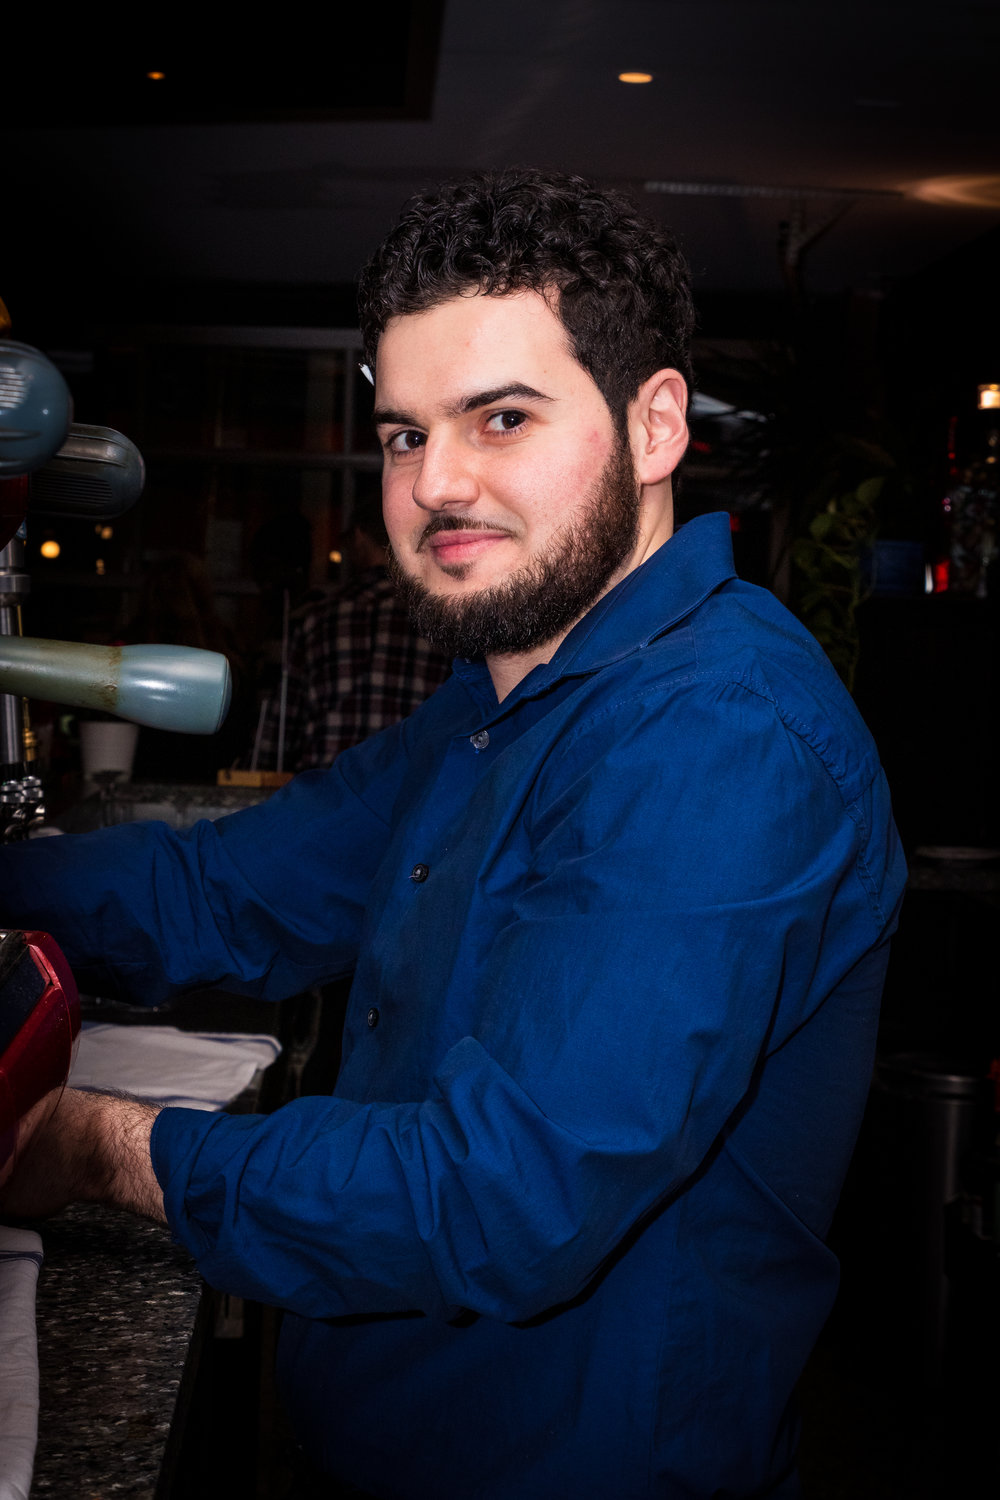 Christoper Spataro - Co-Owner, Salto Restaurant & Bar